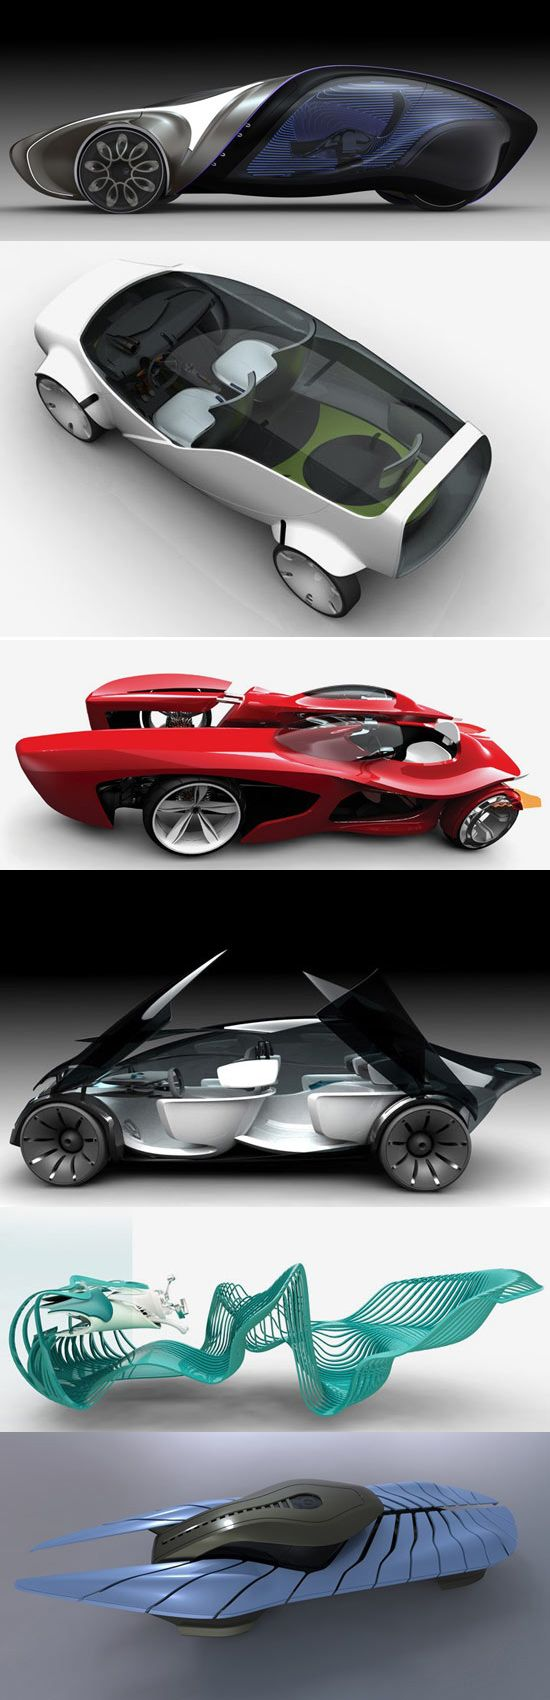 latest vehicle design concepts from RCA